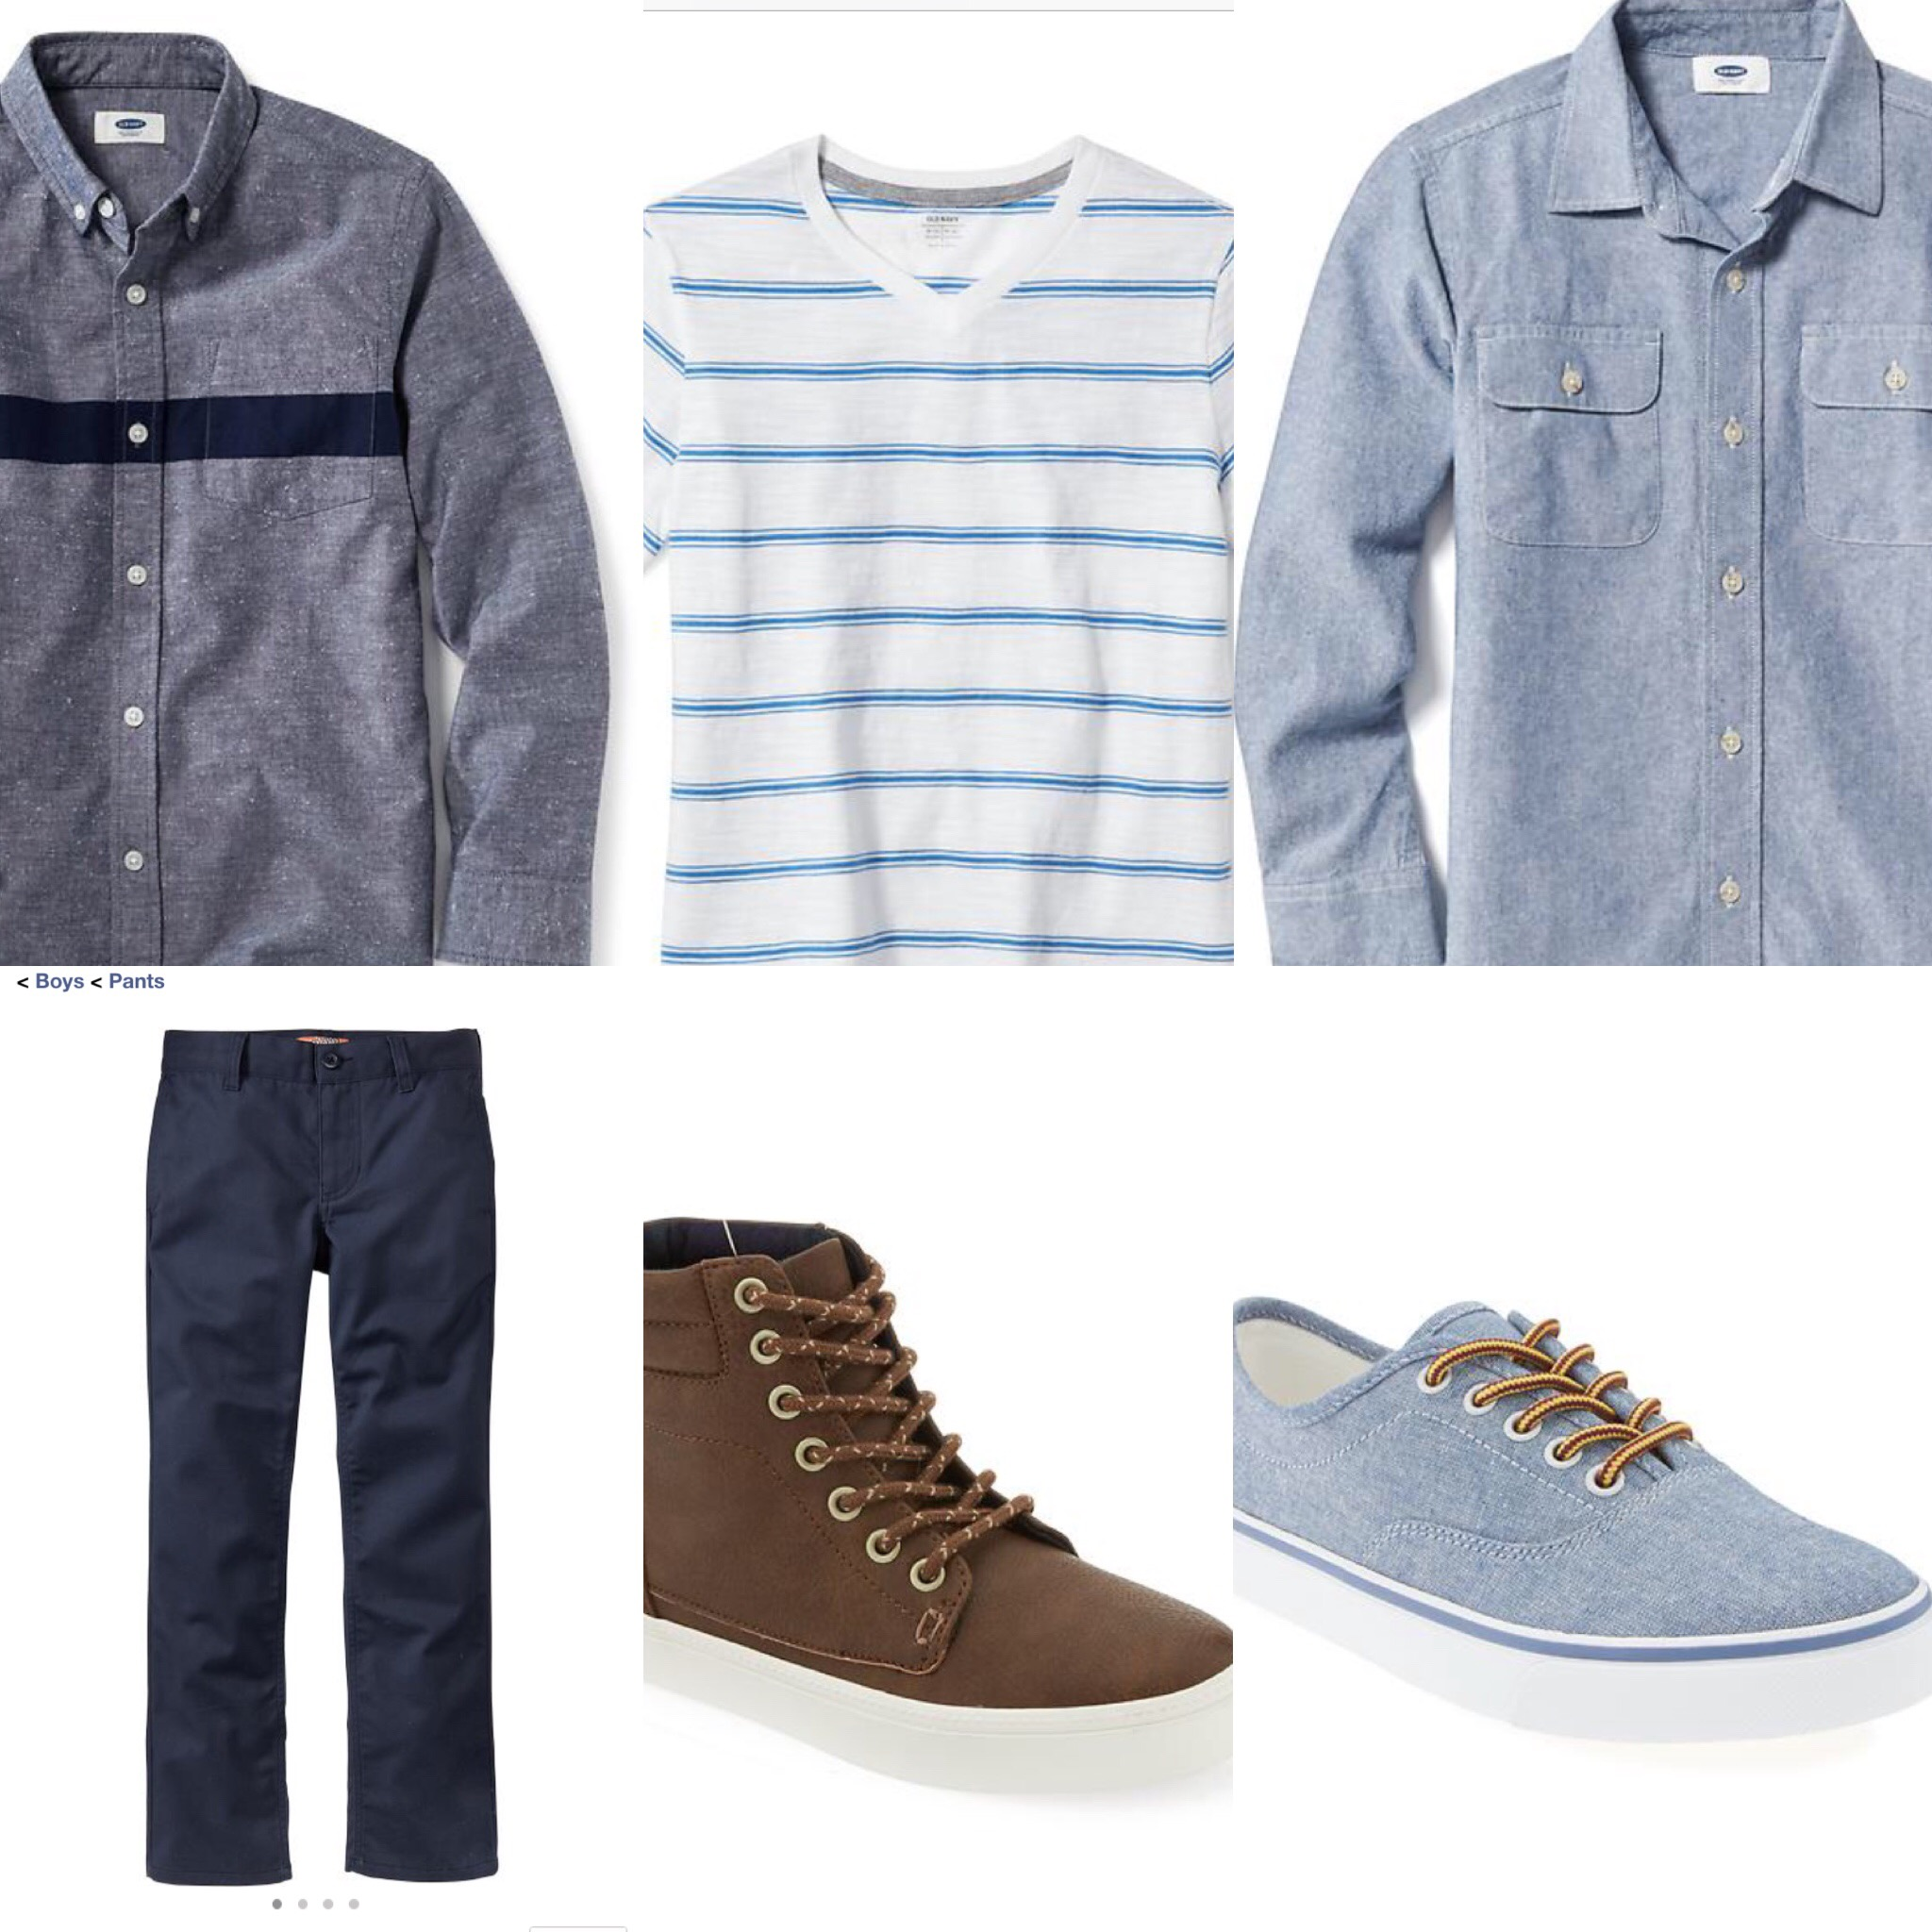 Boy's Clothing Pantone Blue